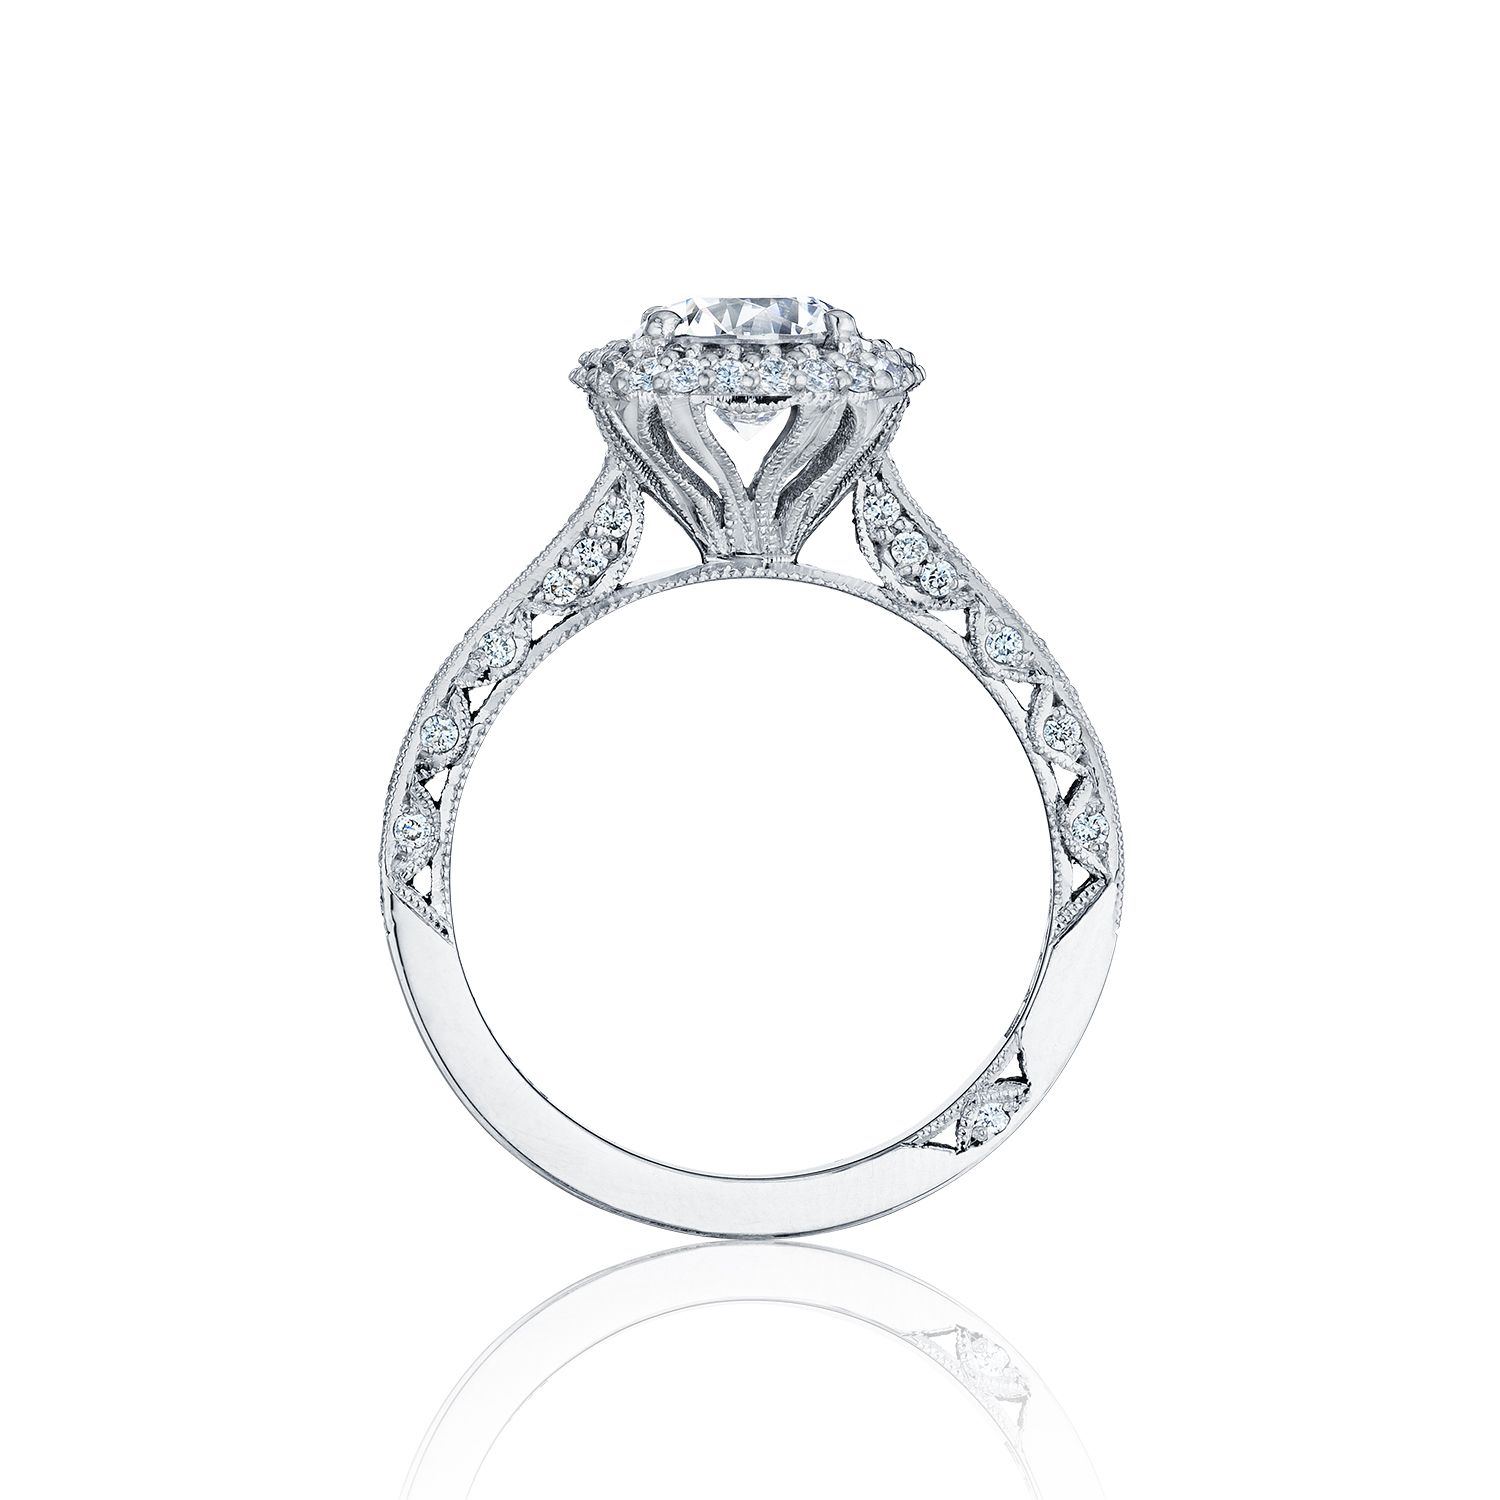 engagement tag images diamond of different ideas rings promise ring settings jewellery wedding types